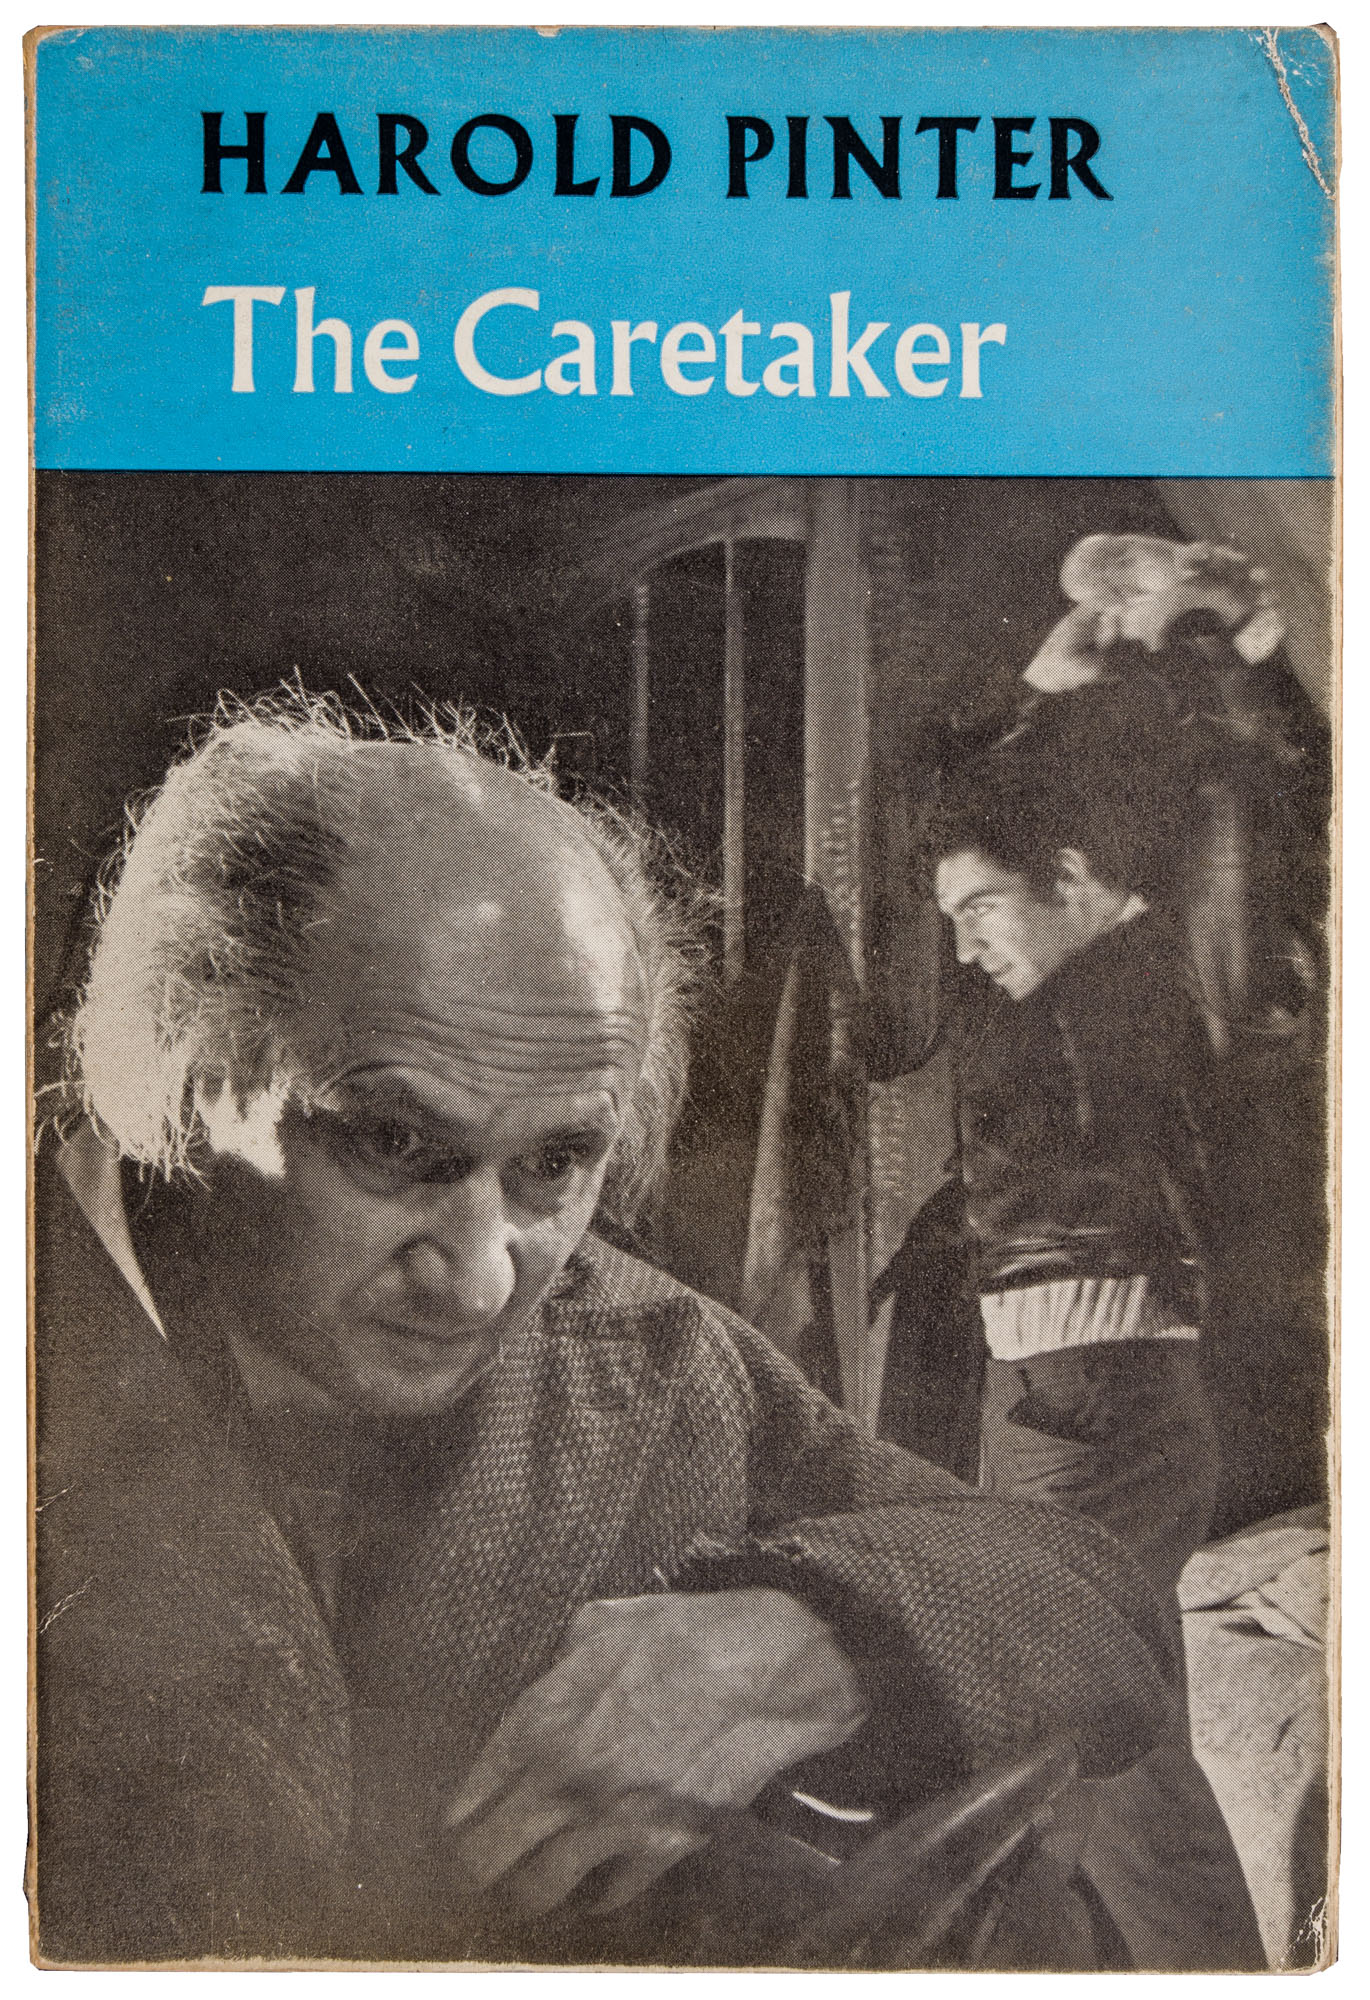 harold pinter the caretaker The new production of harold pinter's1960 play the caretaker at the brooklyn  academy of music's harvey theater is a wonderful opportunity.